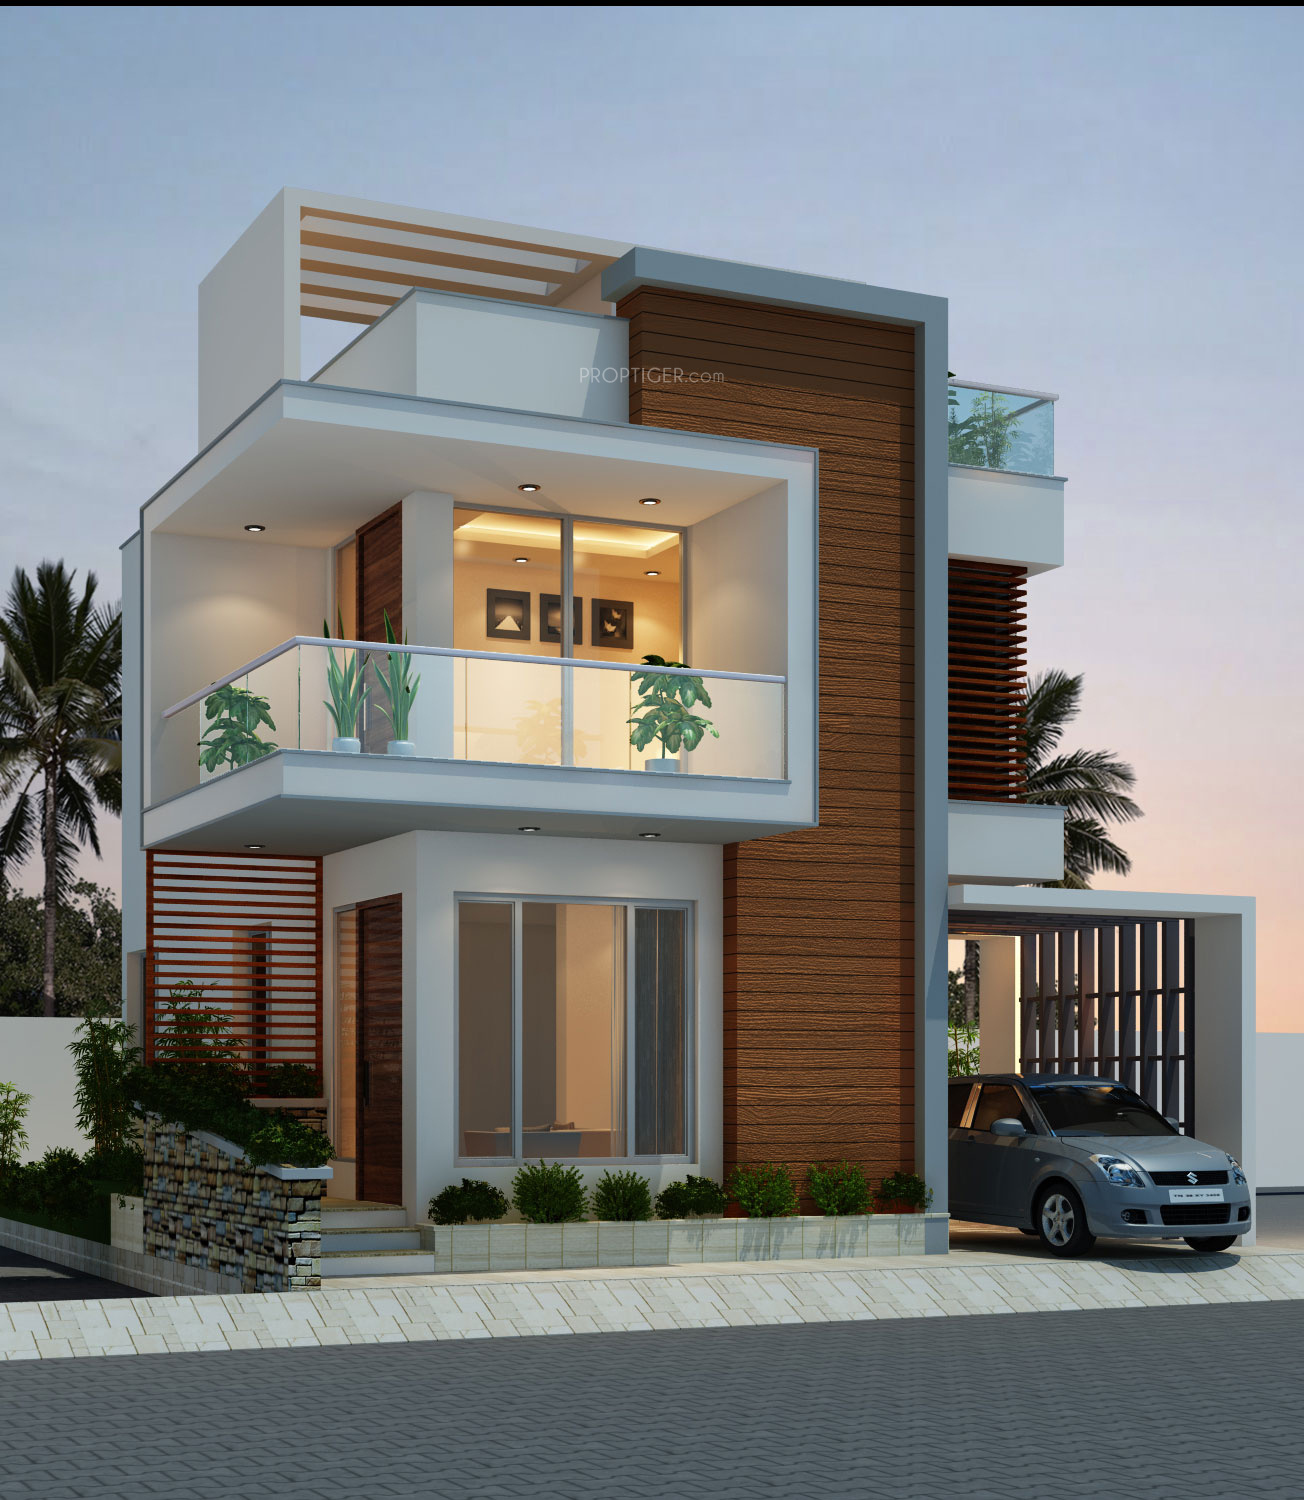 Headway fortune residency villa in perungalathur chennai for Contemporary building elevation